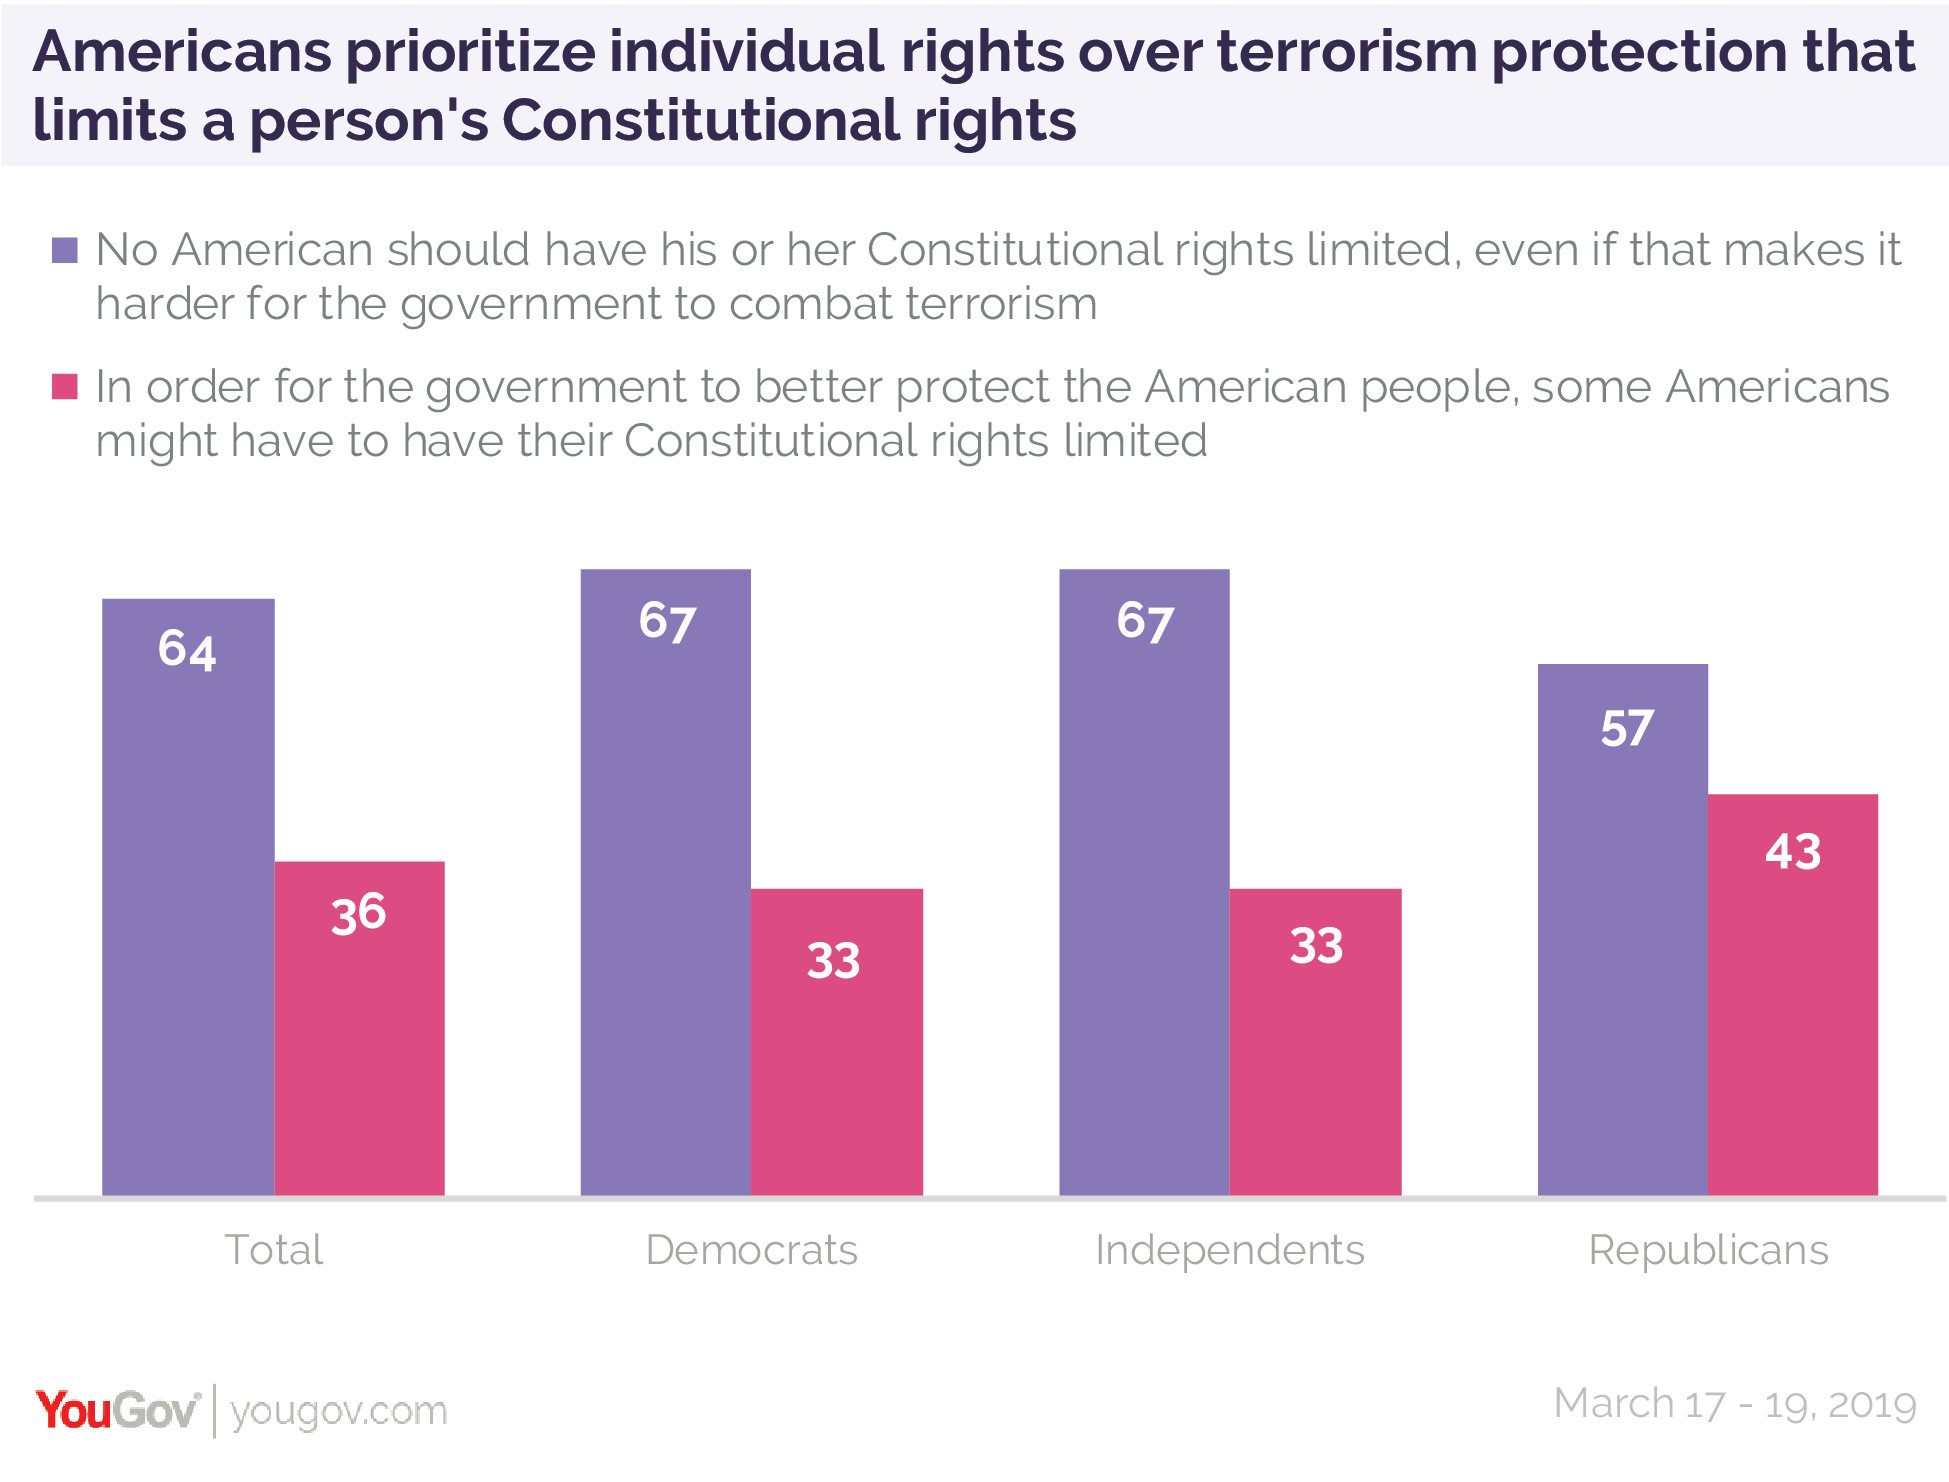 Americans prioritize individual rights over terrorism protection that limits a person's Constitutional rights